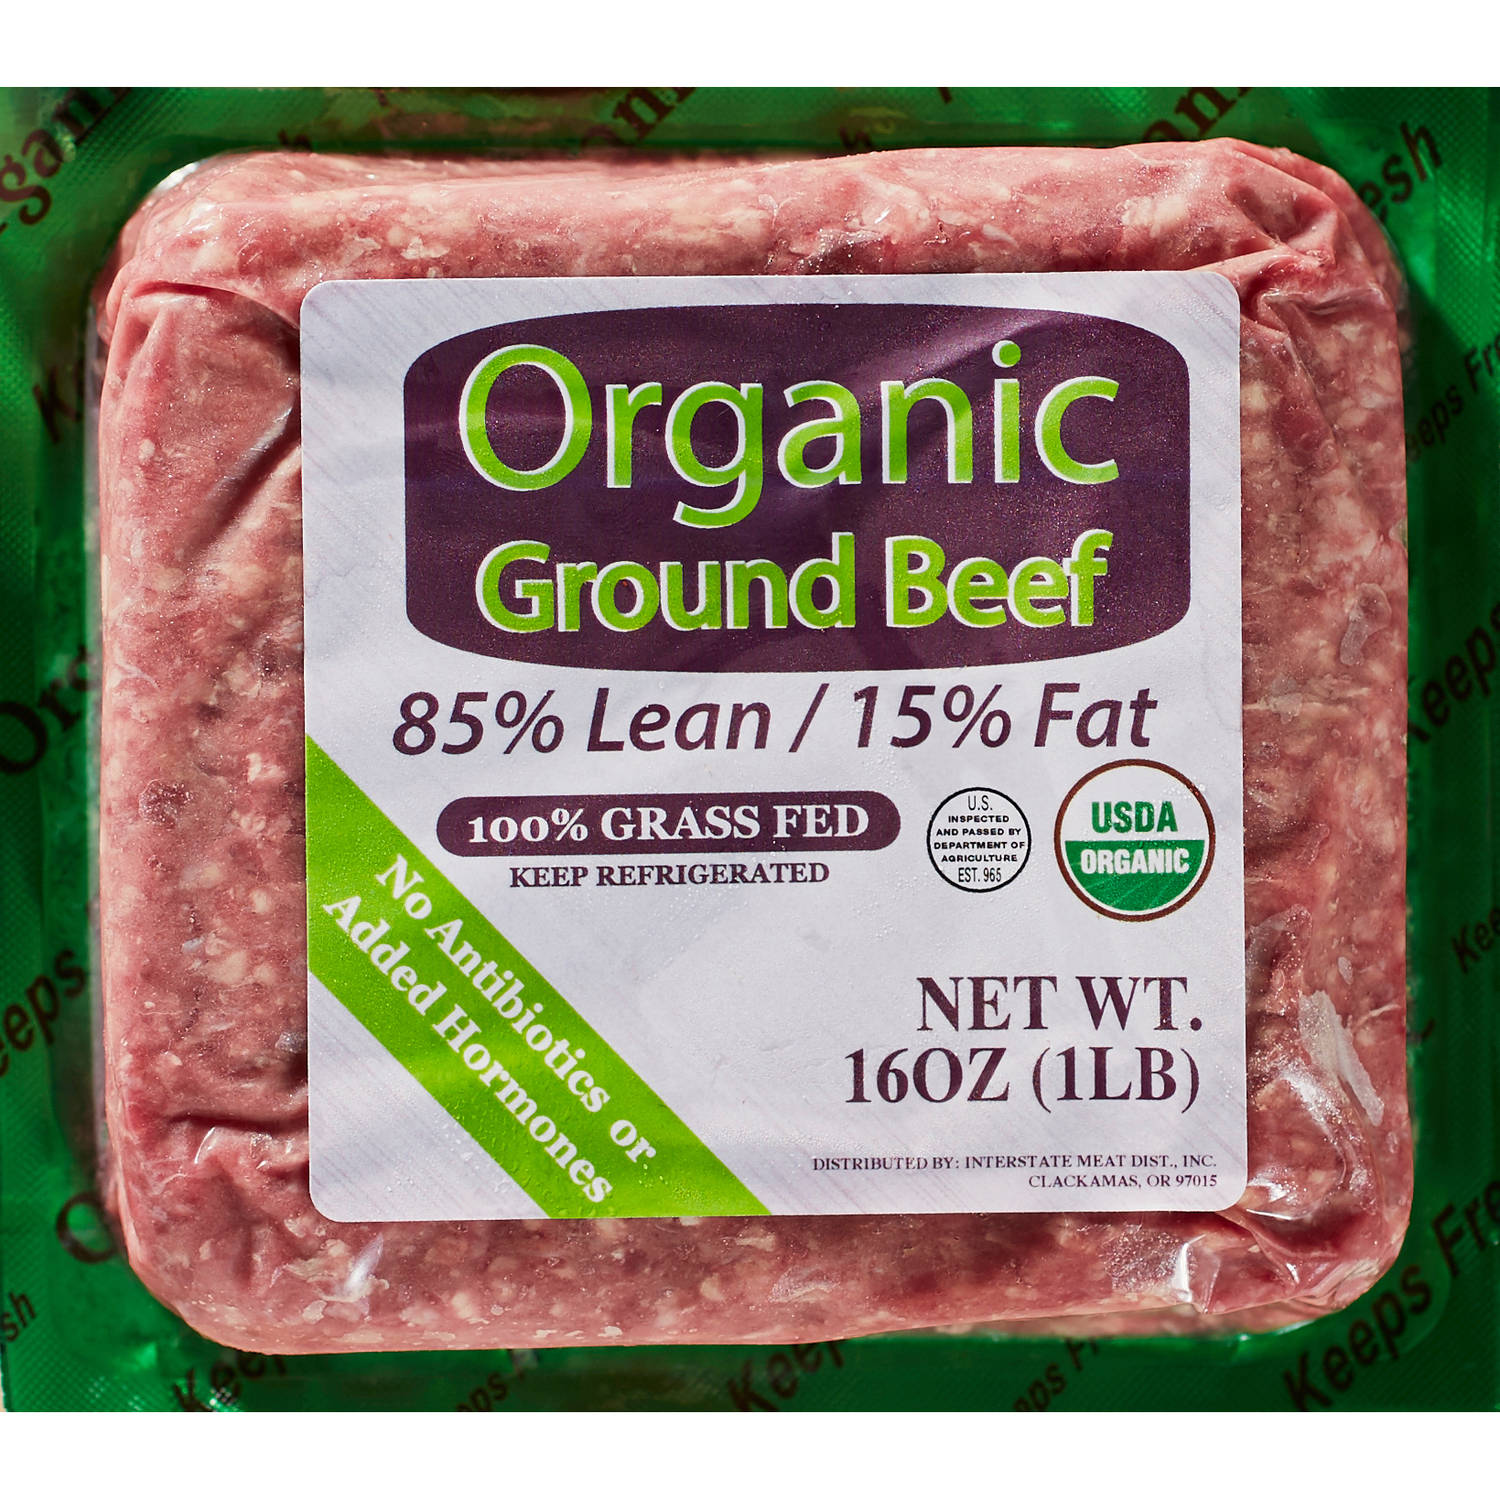 85% Lean/15% Fat Organic Grass Fed Ground Beef, 1 lb